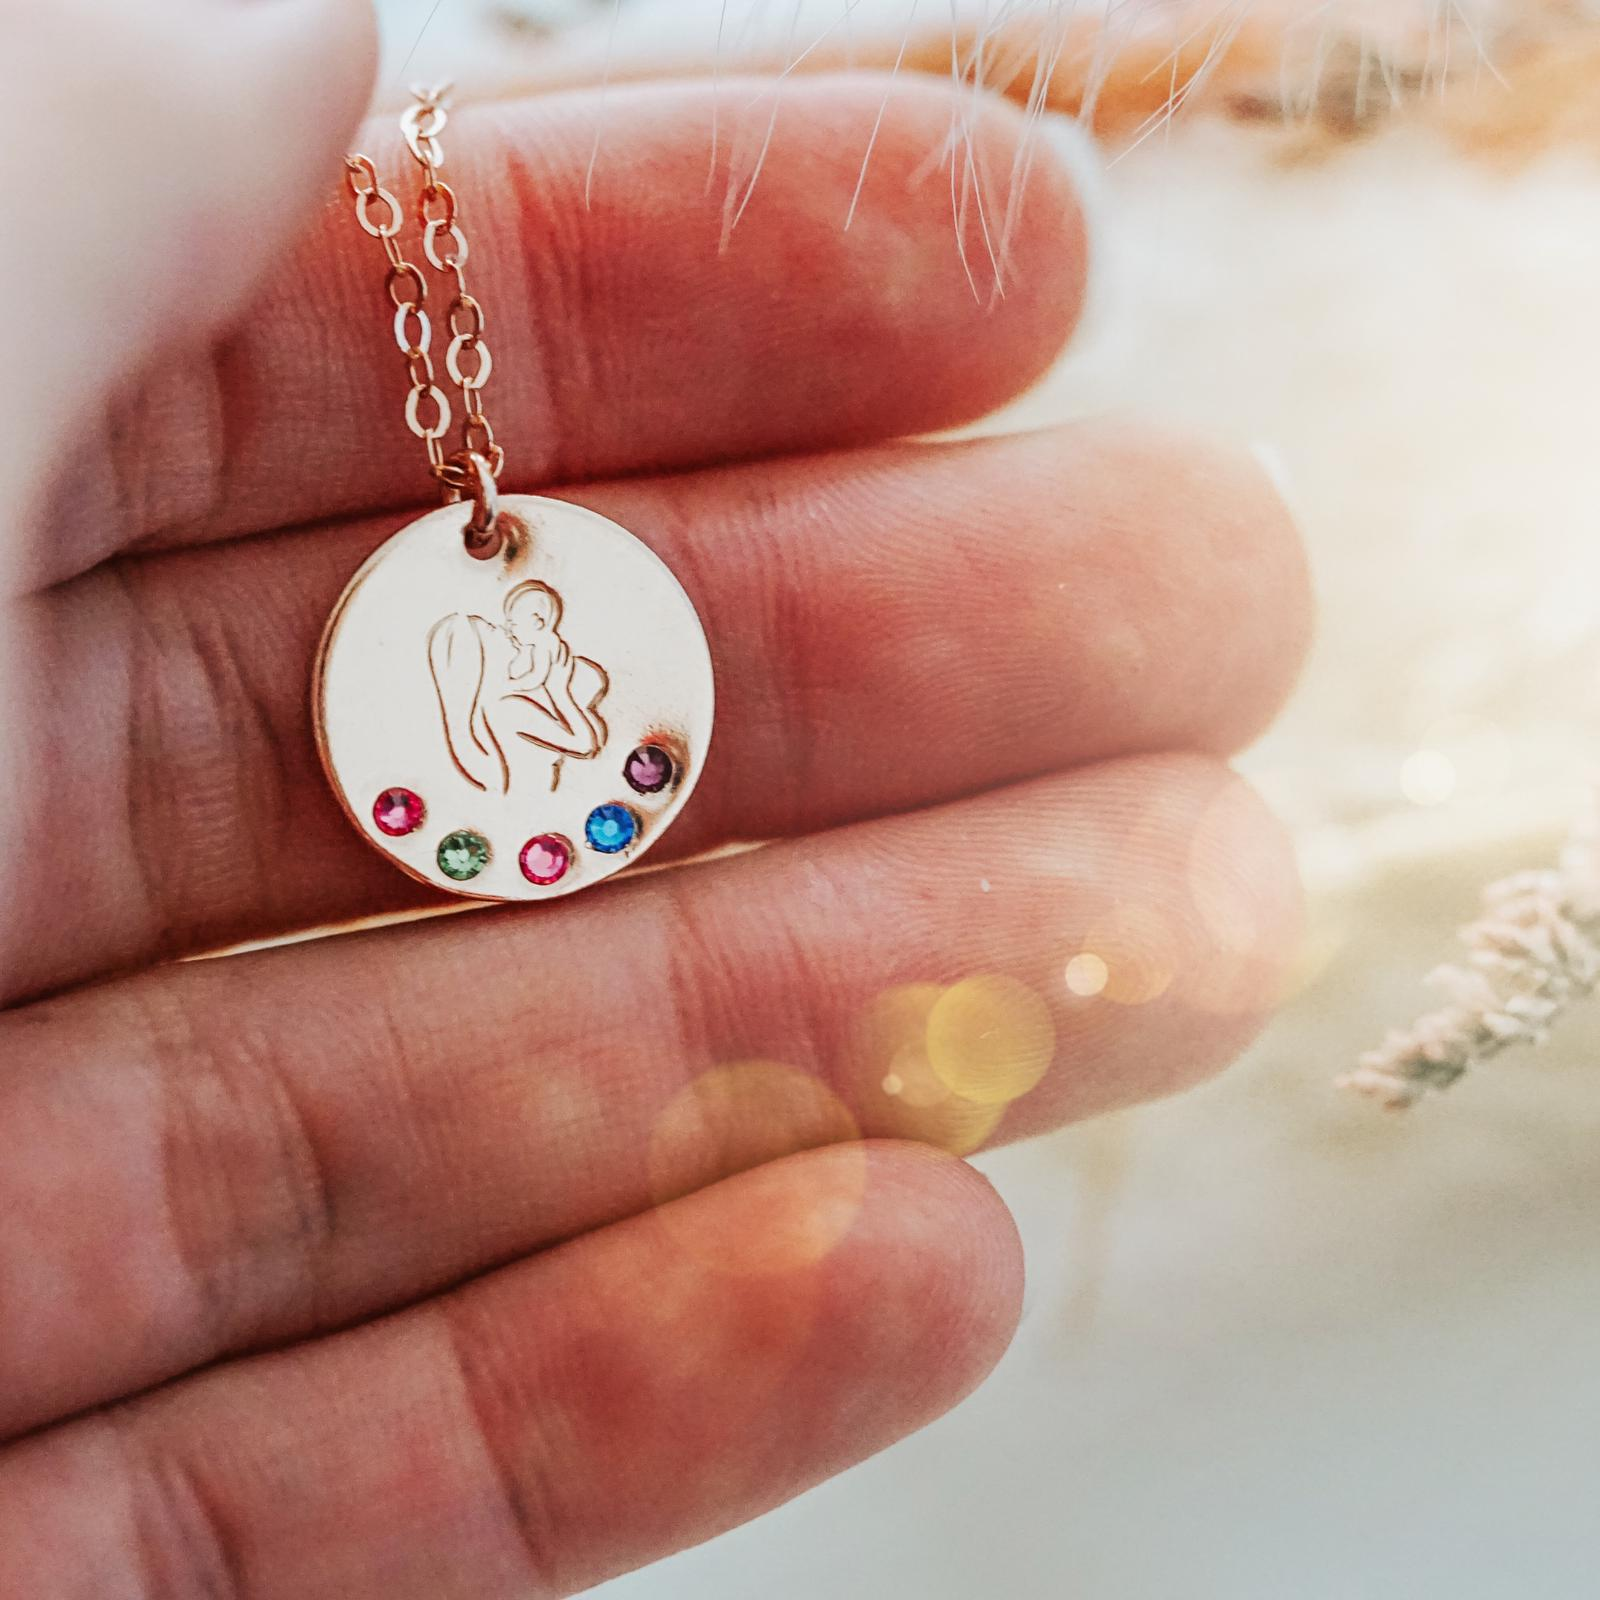 Woman and Child Birthstone Necklace - Large Disc